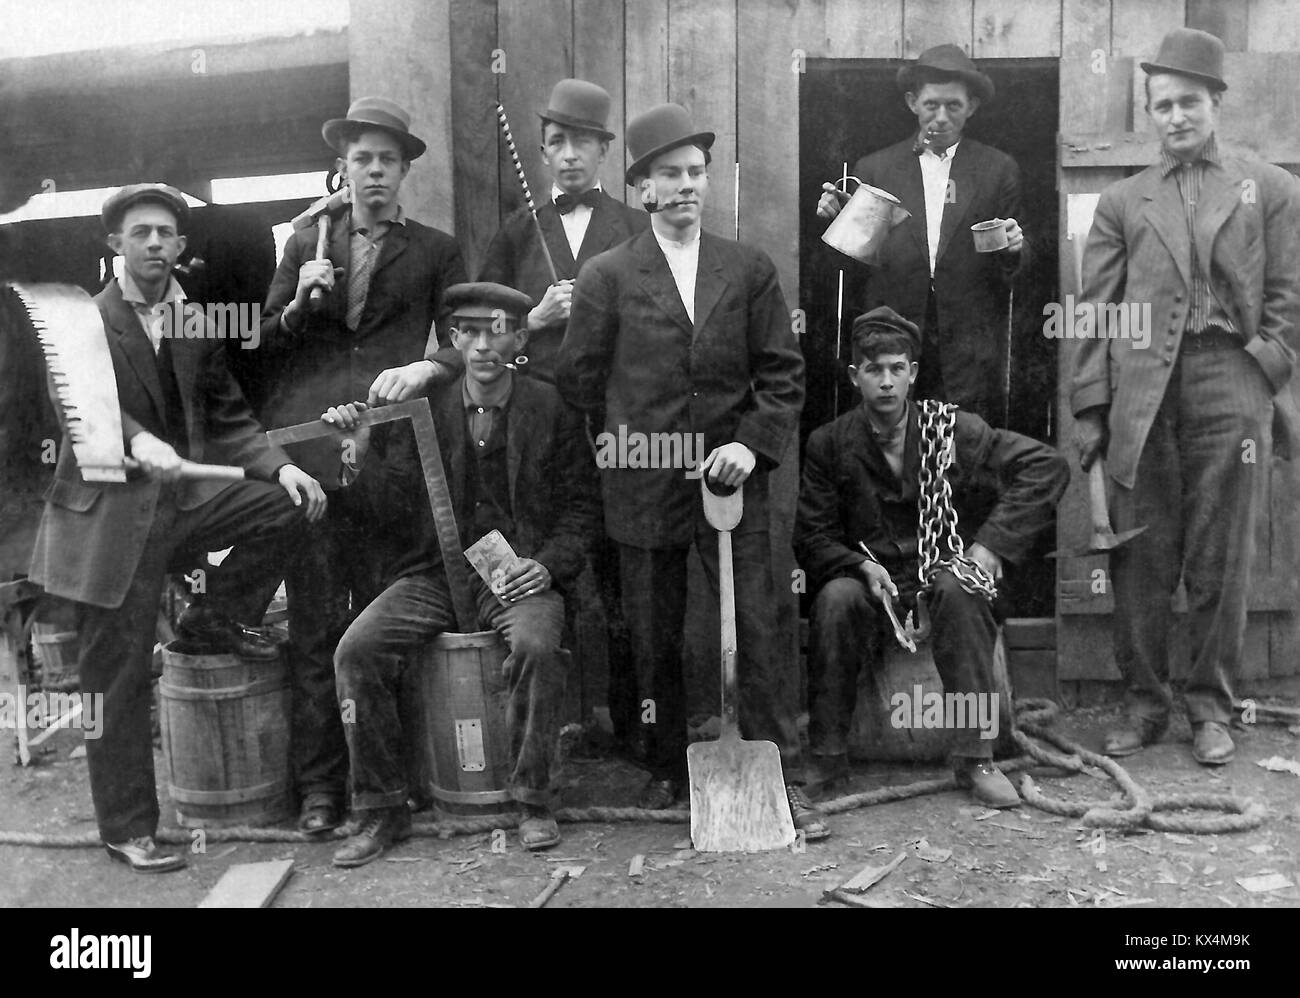 8 different trade workers posed with their tools, circa 1910, vintage photograph. - Stock Image